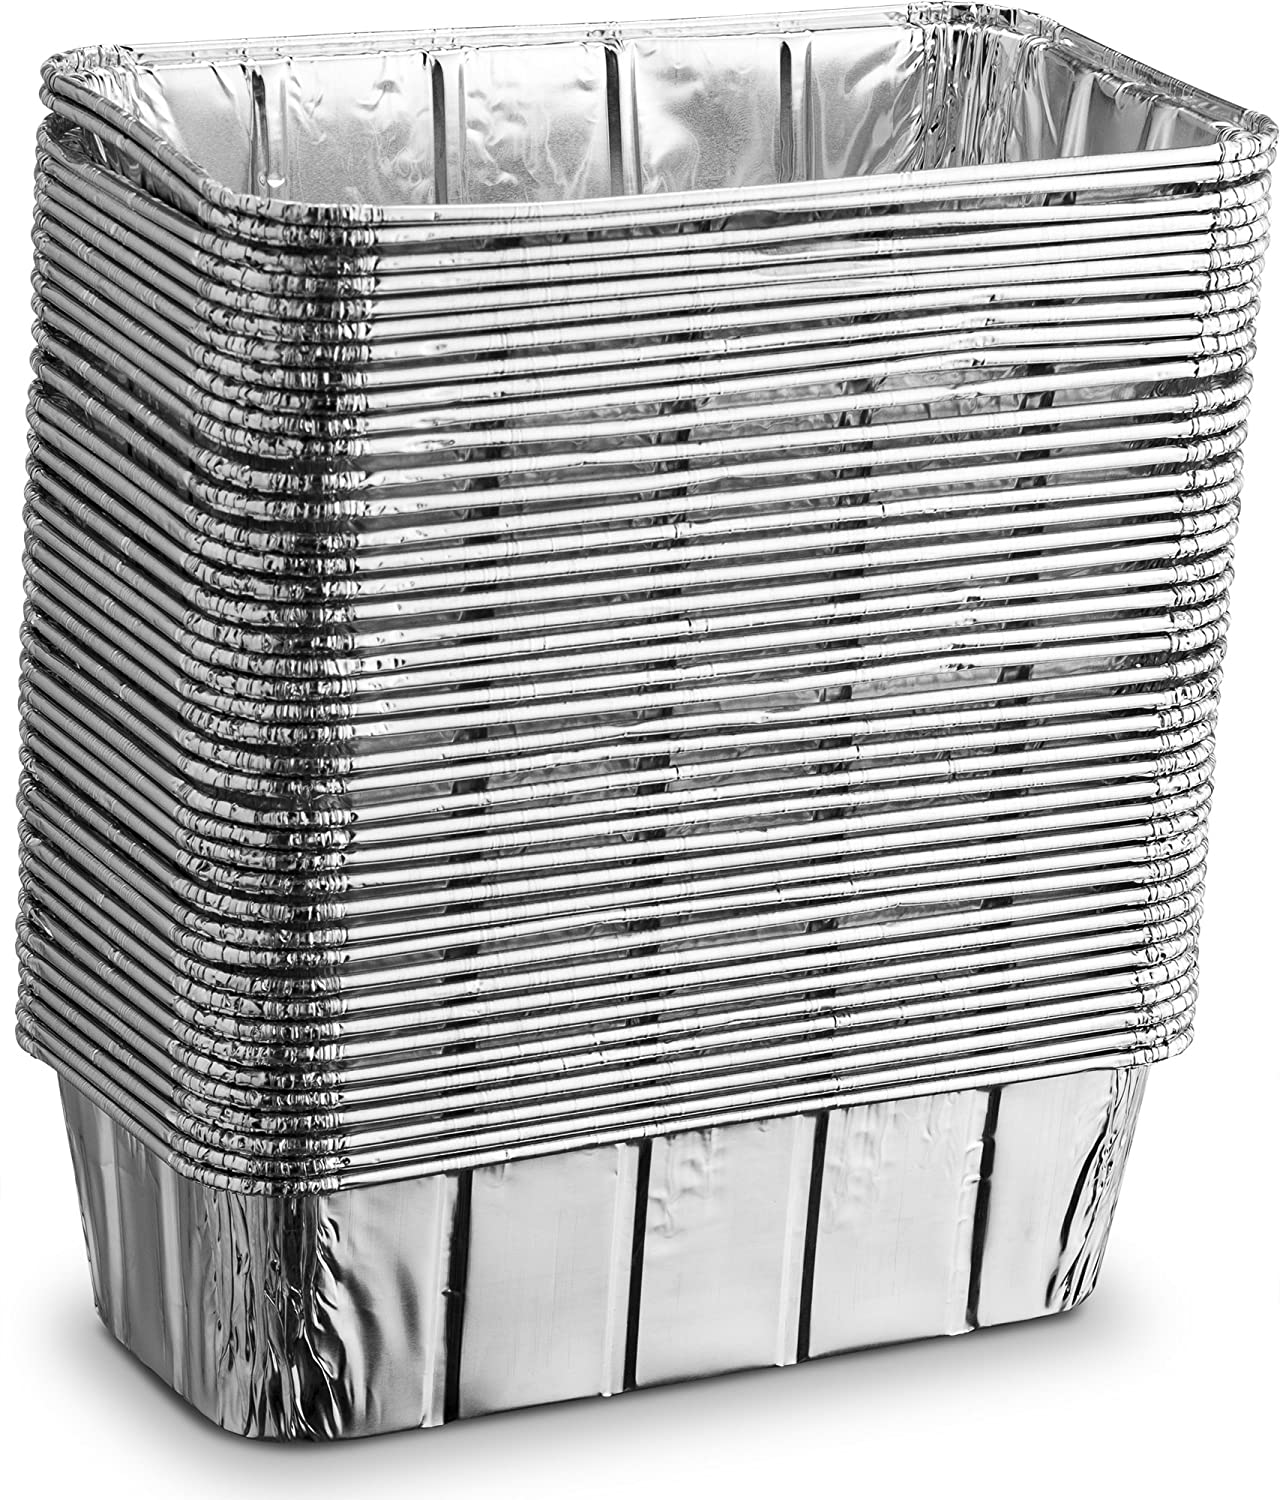 Baking Cooking Broiling Propack Aluminum Disposable Rectangle 3 Pound Loaf Pans For Serving Roasting Cakes 10.5 x 5 x 2.5 Pack of 50 10.5/'/' x 5/'/' x 2.5/'/' Pack of 50 KCH Corporation